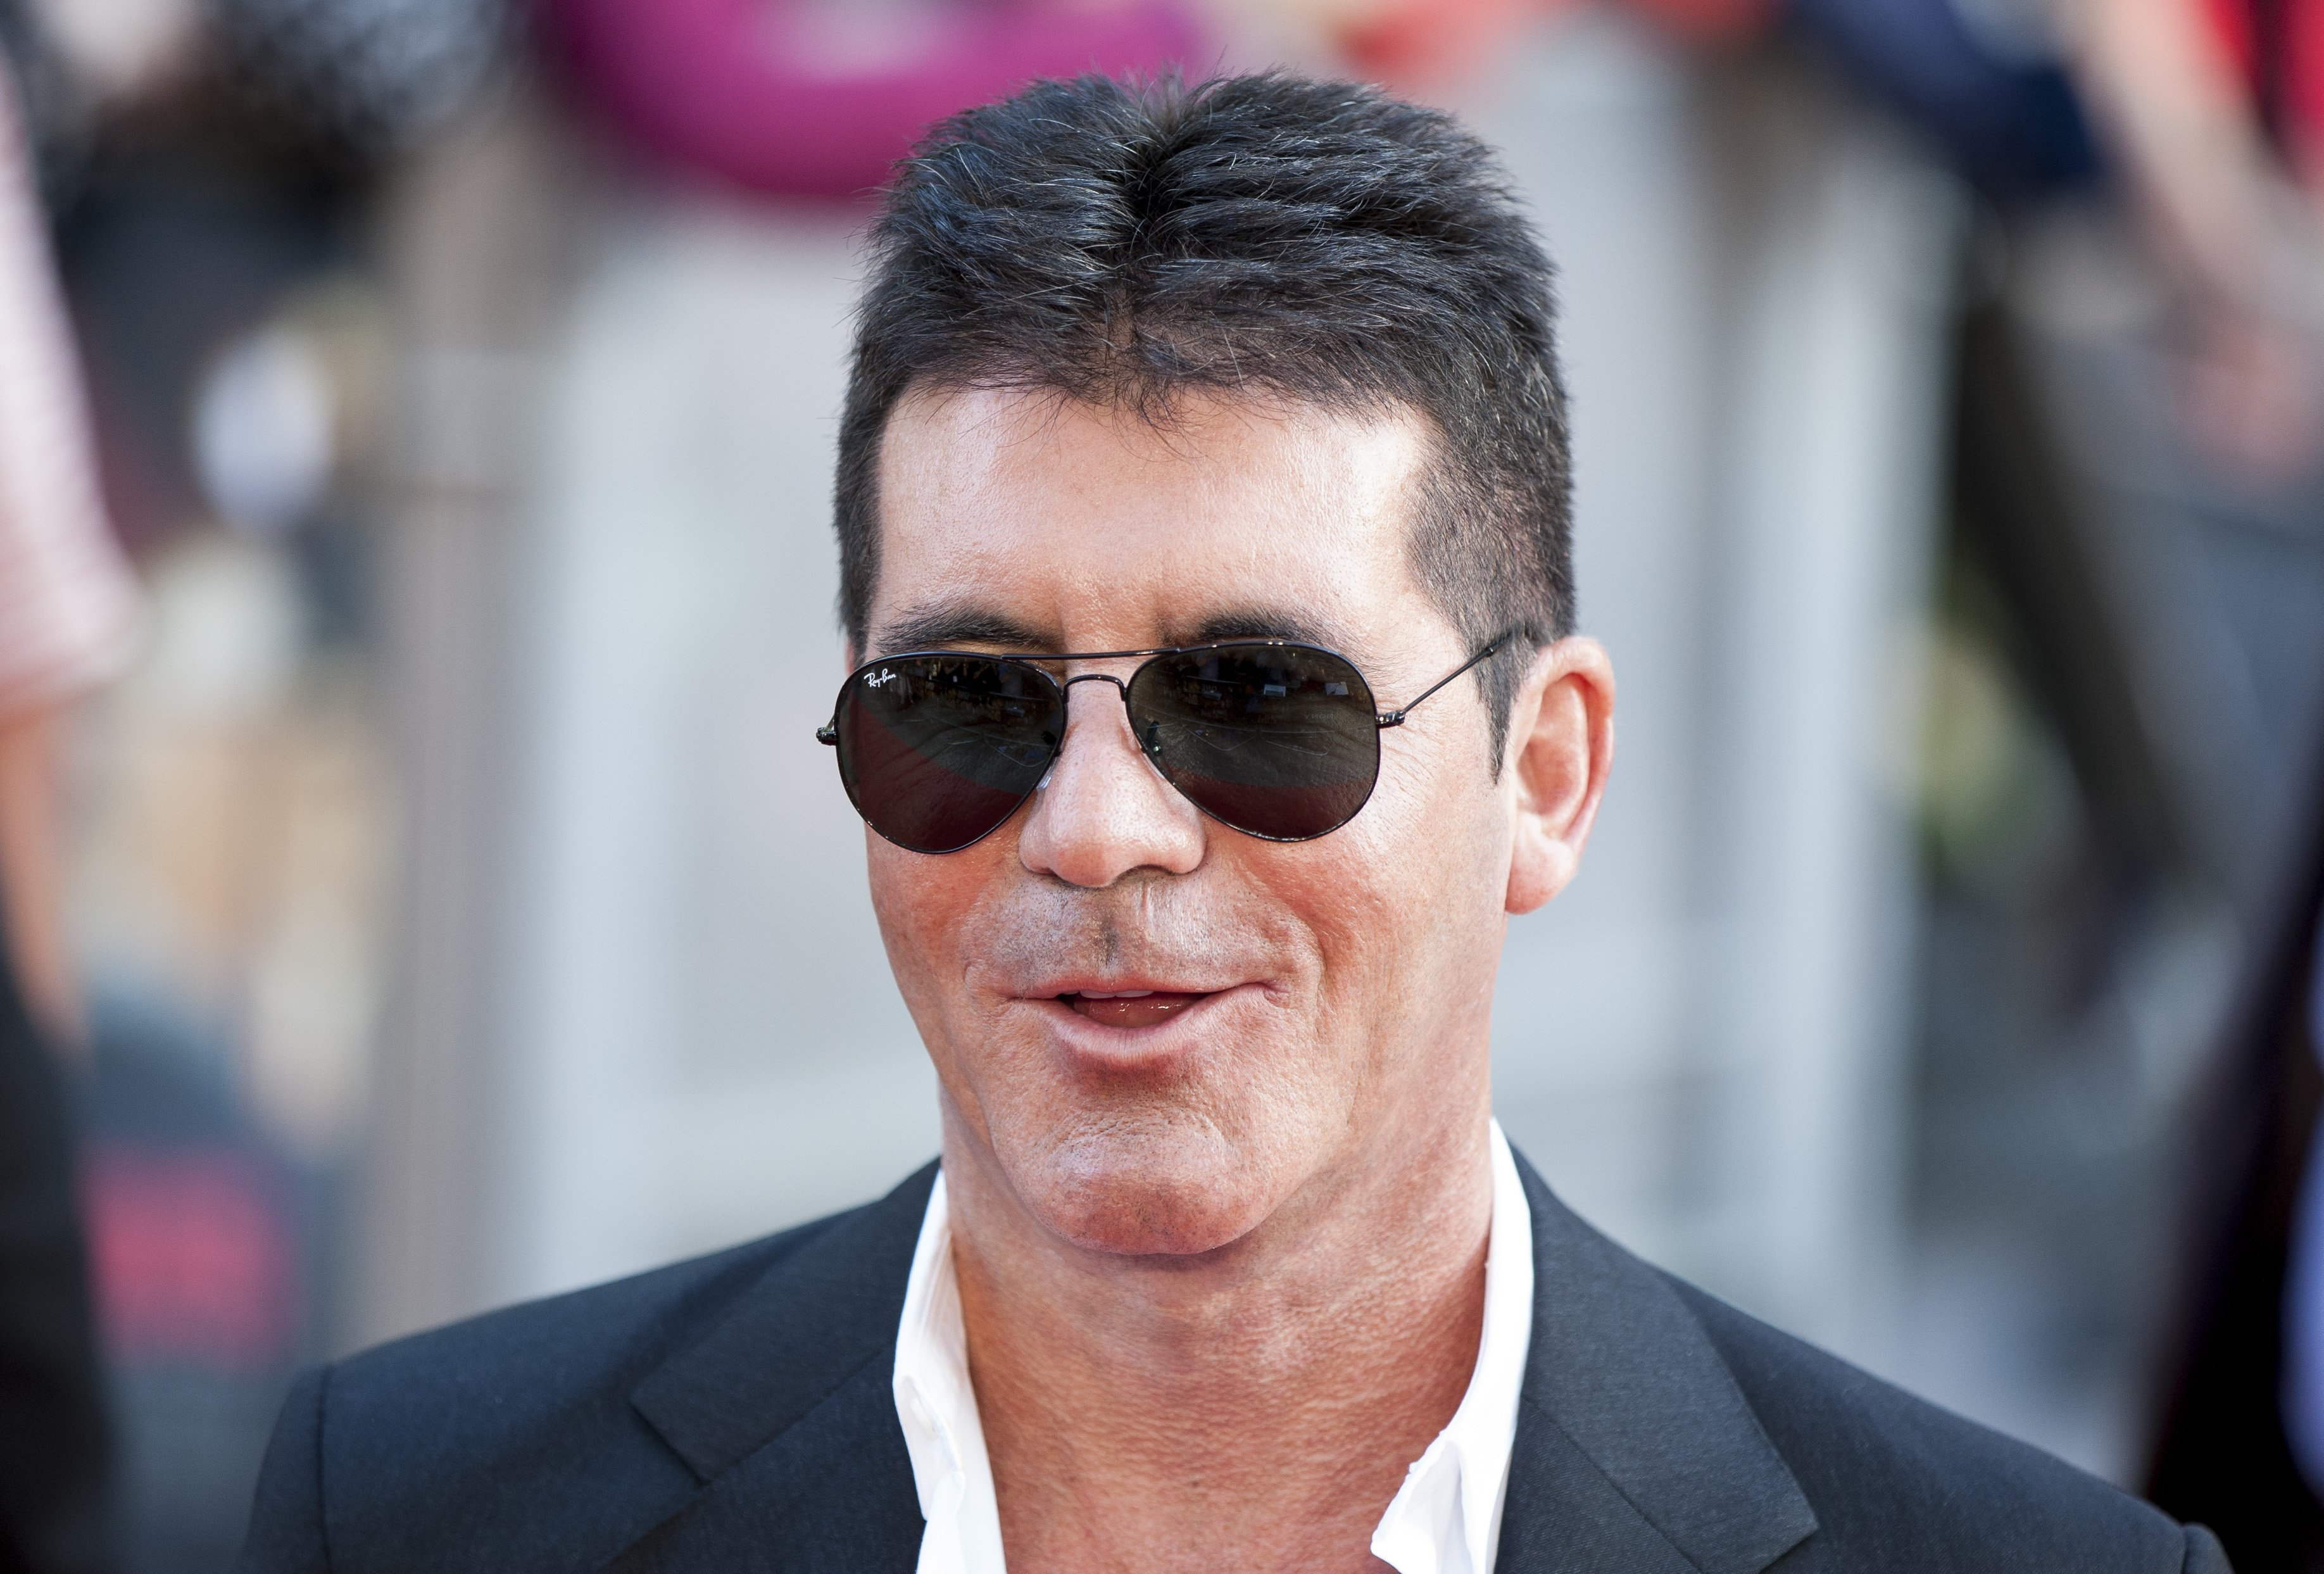 Simon Cowell. I Image: Getty Images.